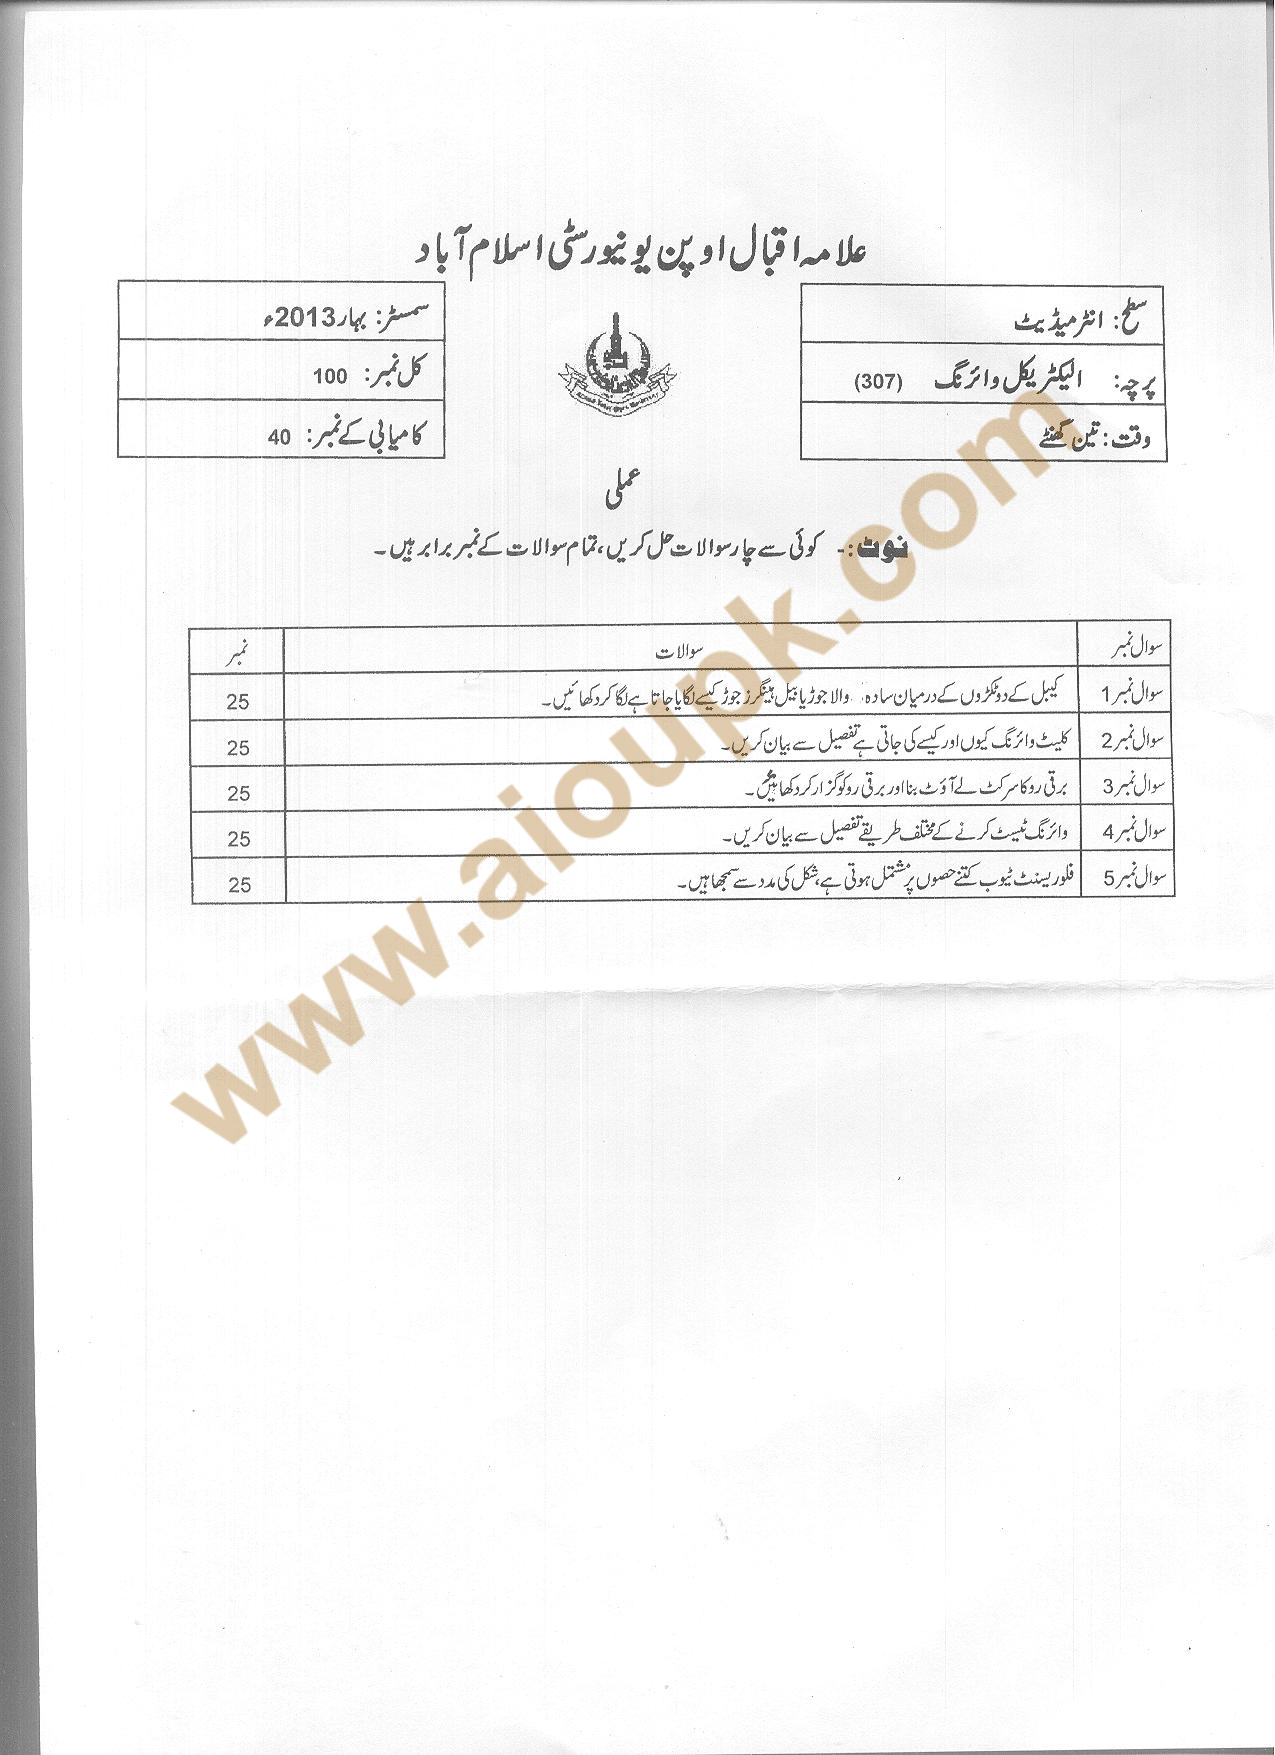 Electrical Wiring Code No 307 Aiou Old Paper